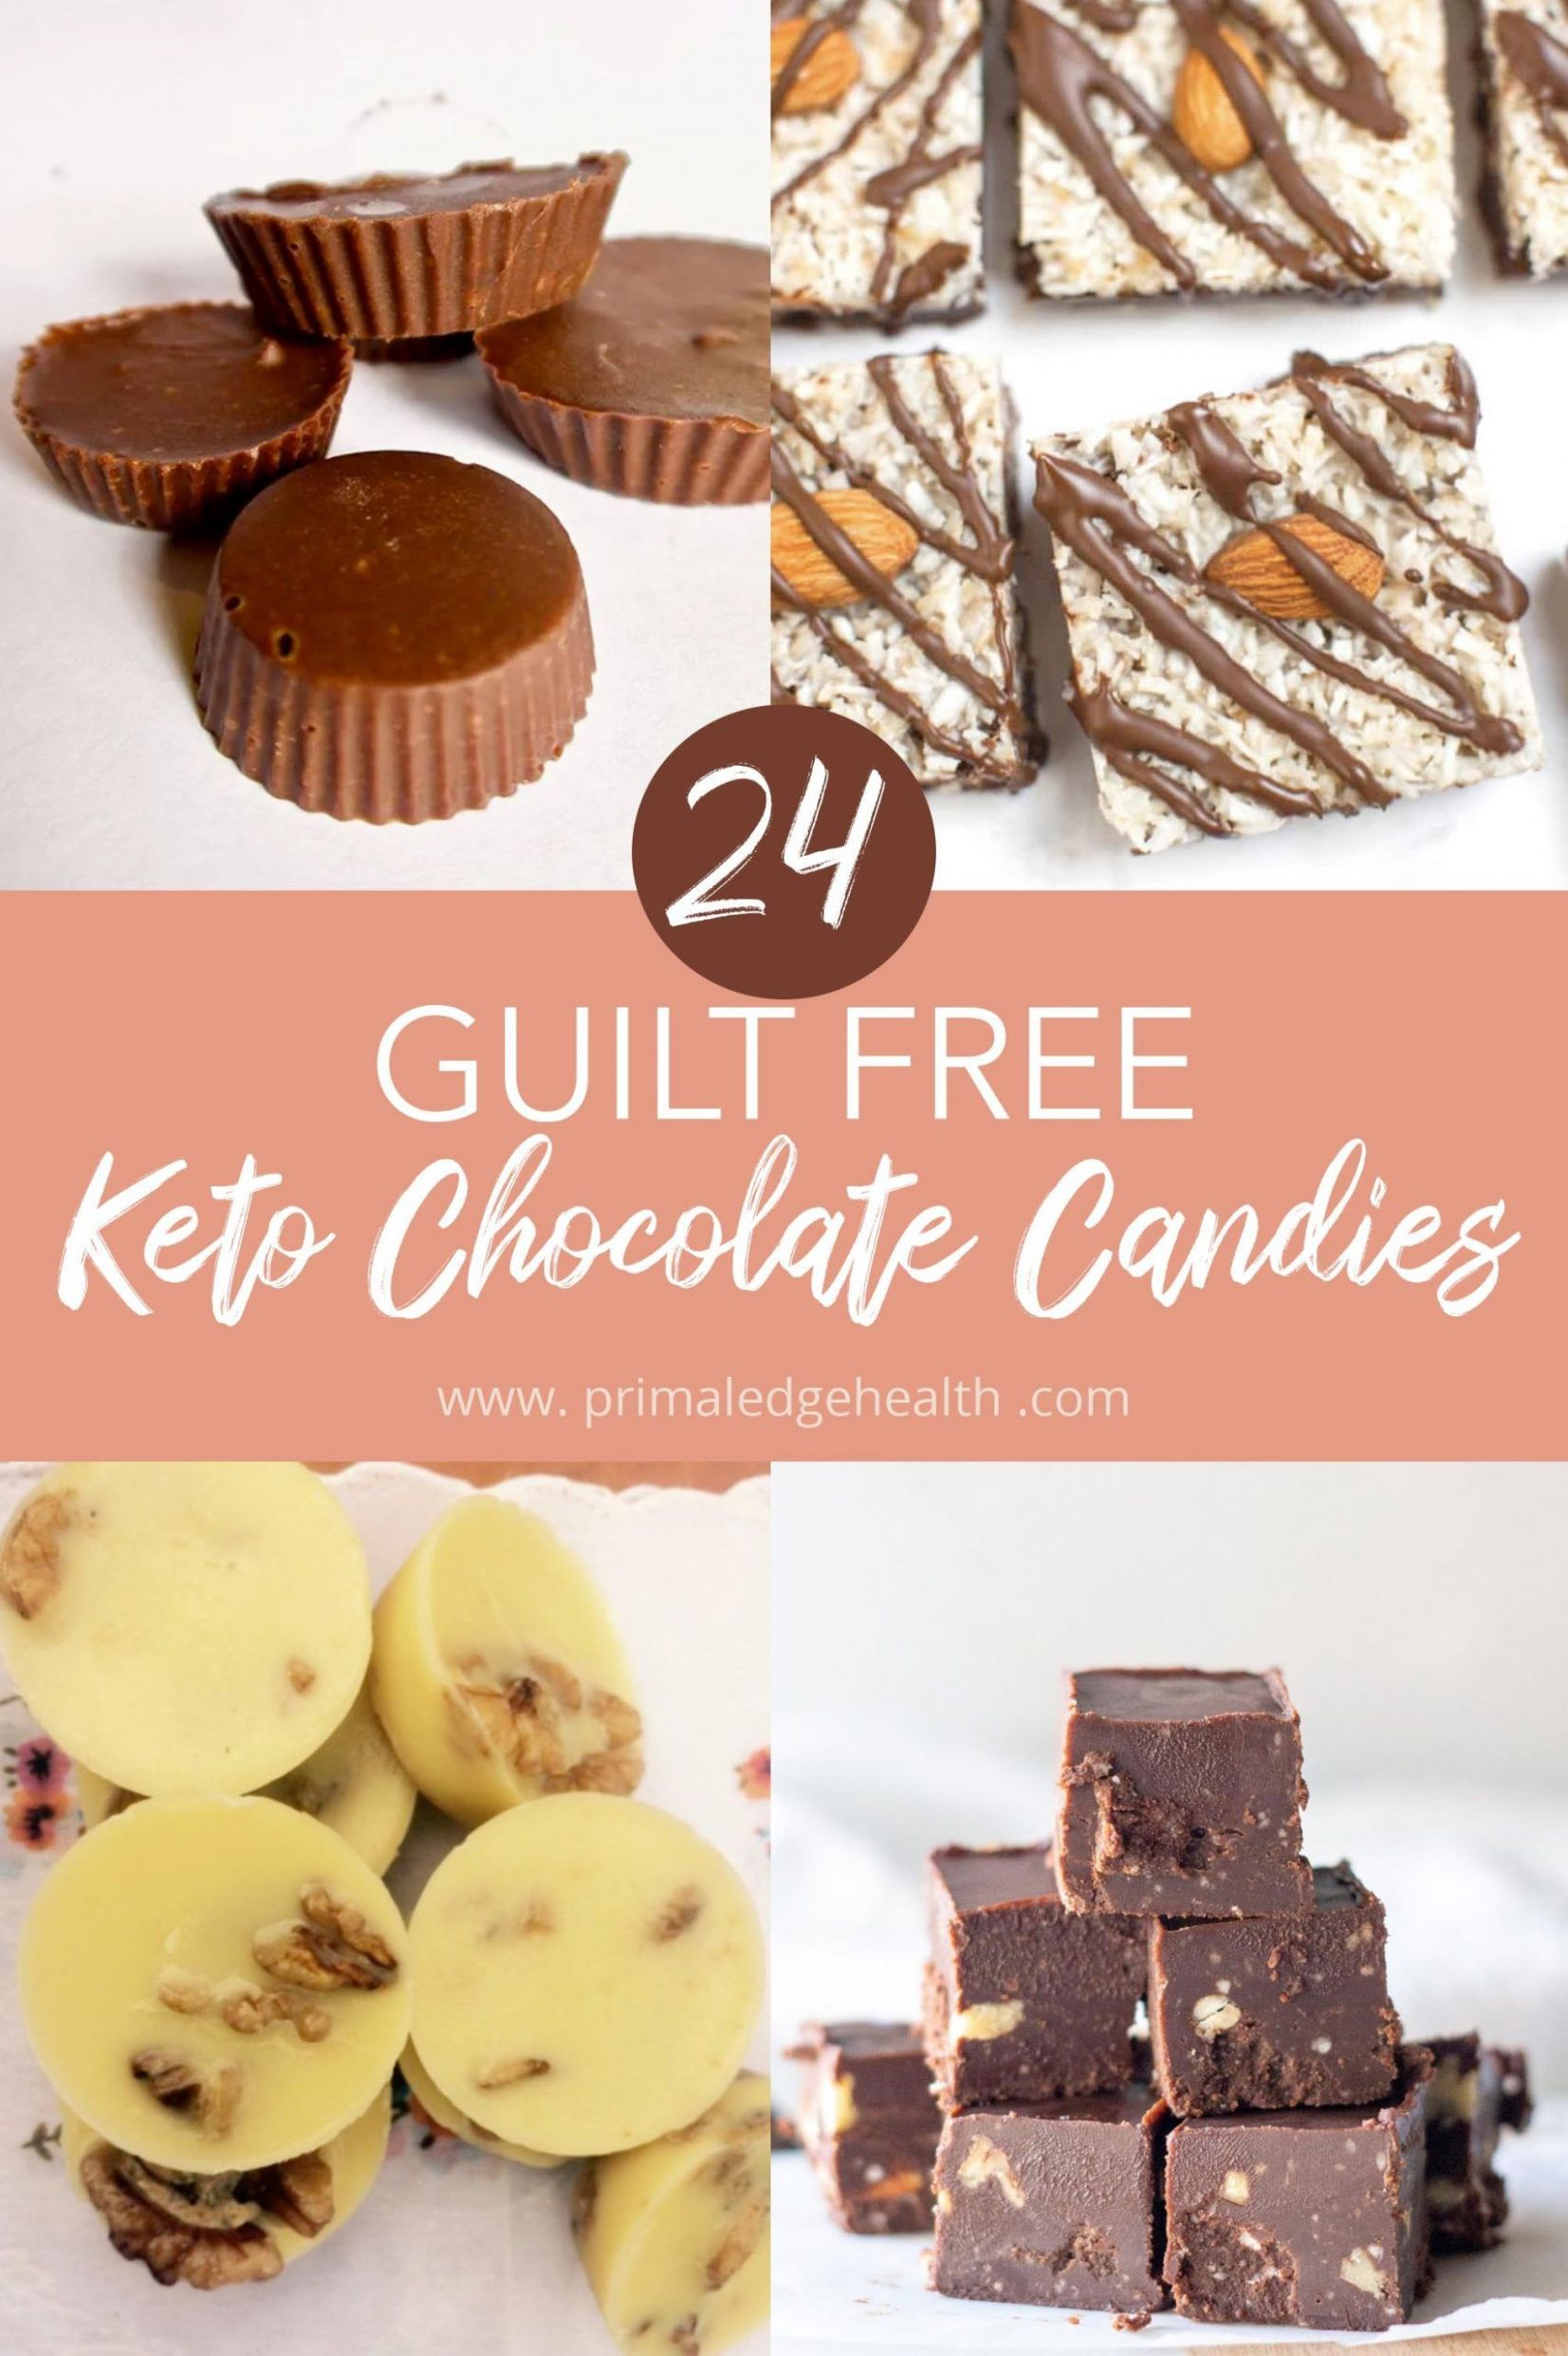 11 Guilt-Free Keto Chocolate Recipes to Enjoy | Keto chocolate ..